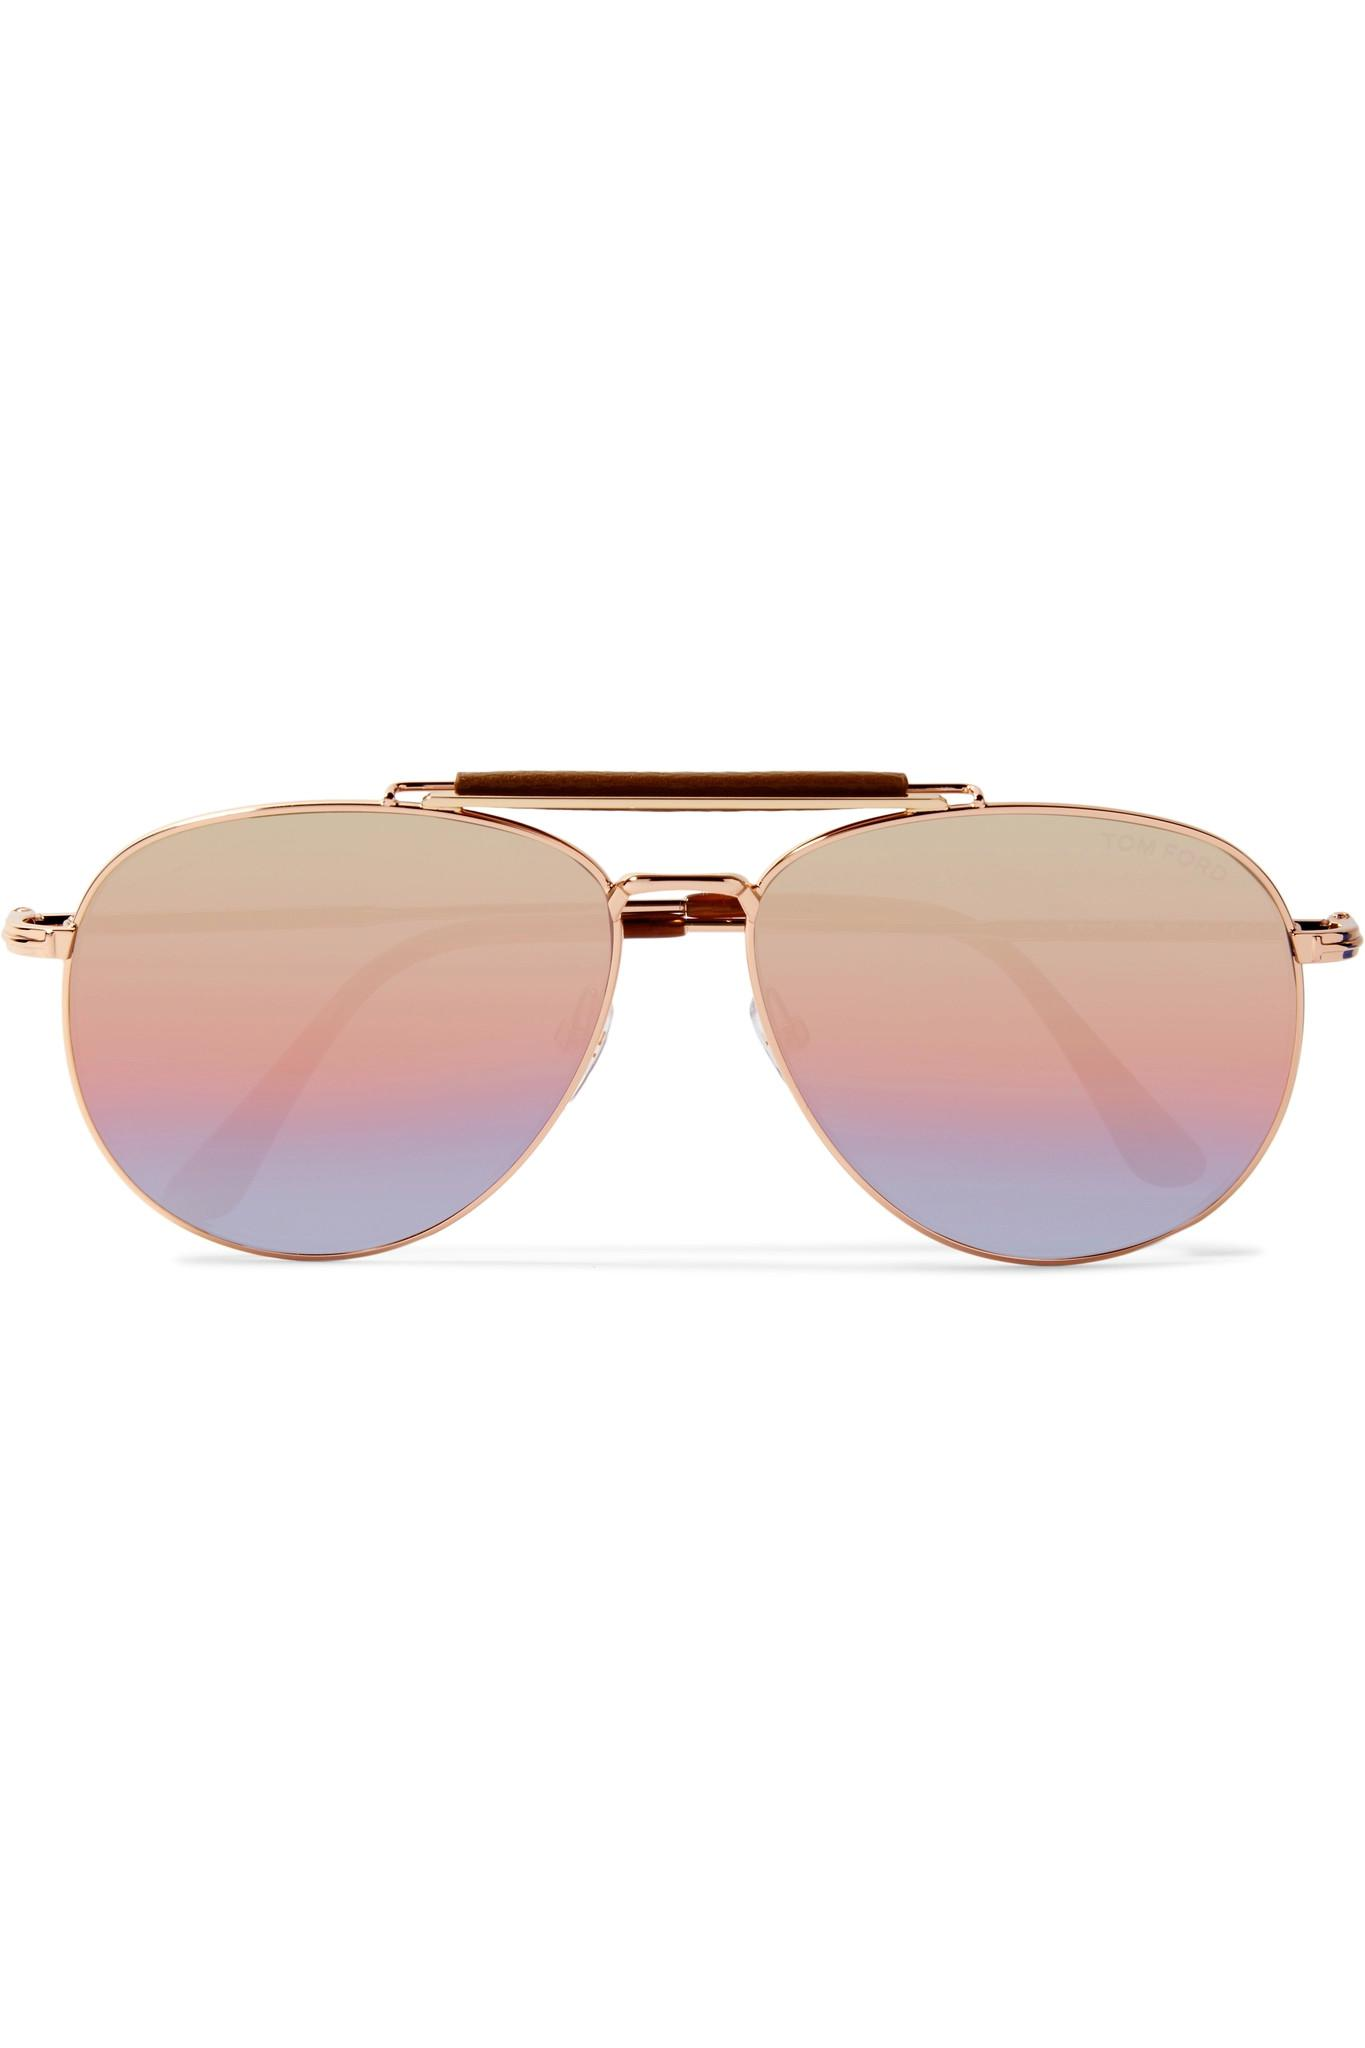 Sean Aviator-style Rose Gold-tone Mirrored Sunglasses - Pink Tom Ford DXASfbEDQw